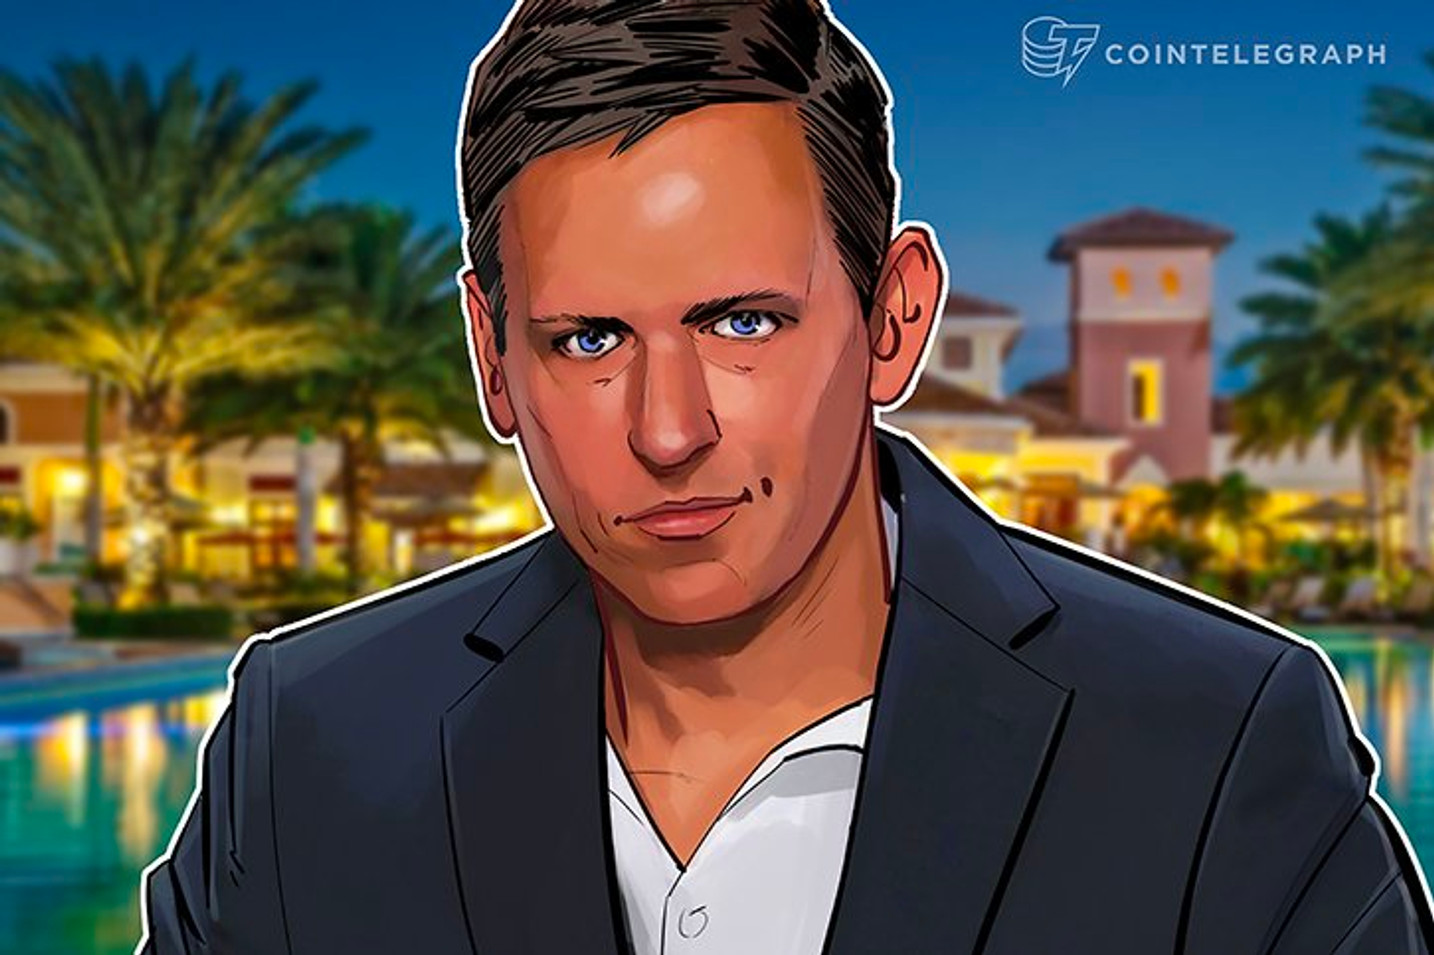 Peter Thiel's VC Fund Invests Millions Into Bitcoin, Market Reacts